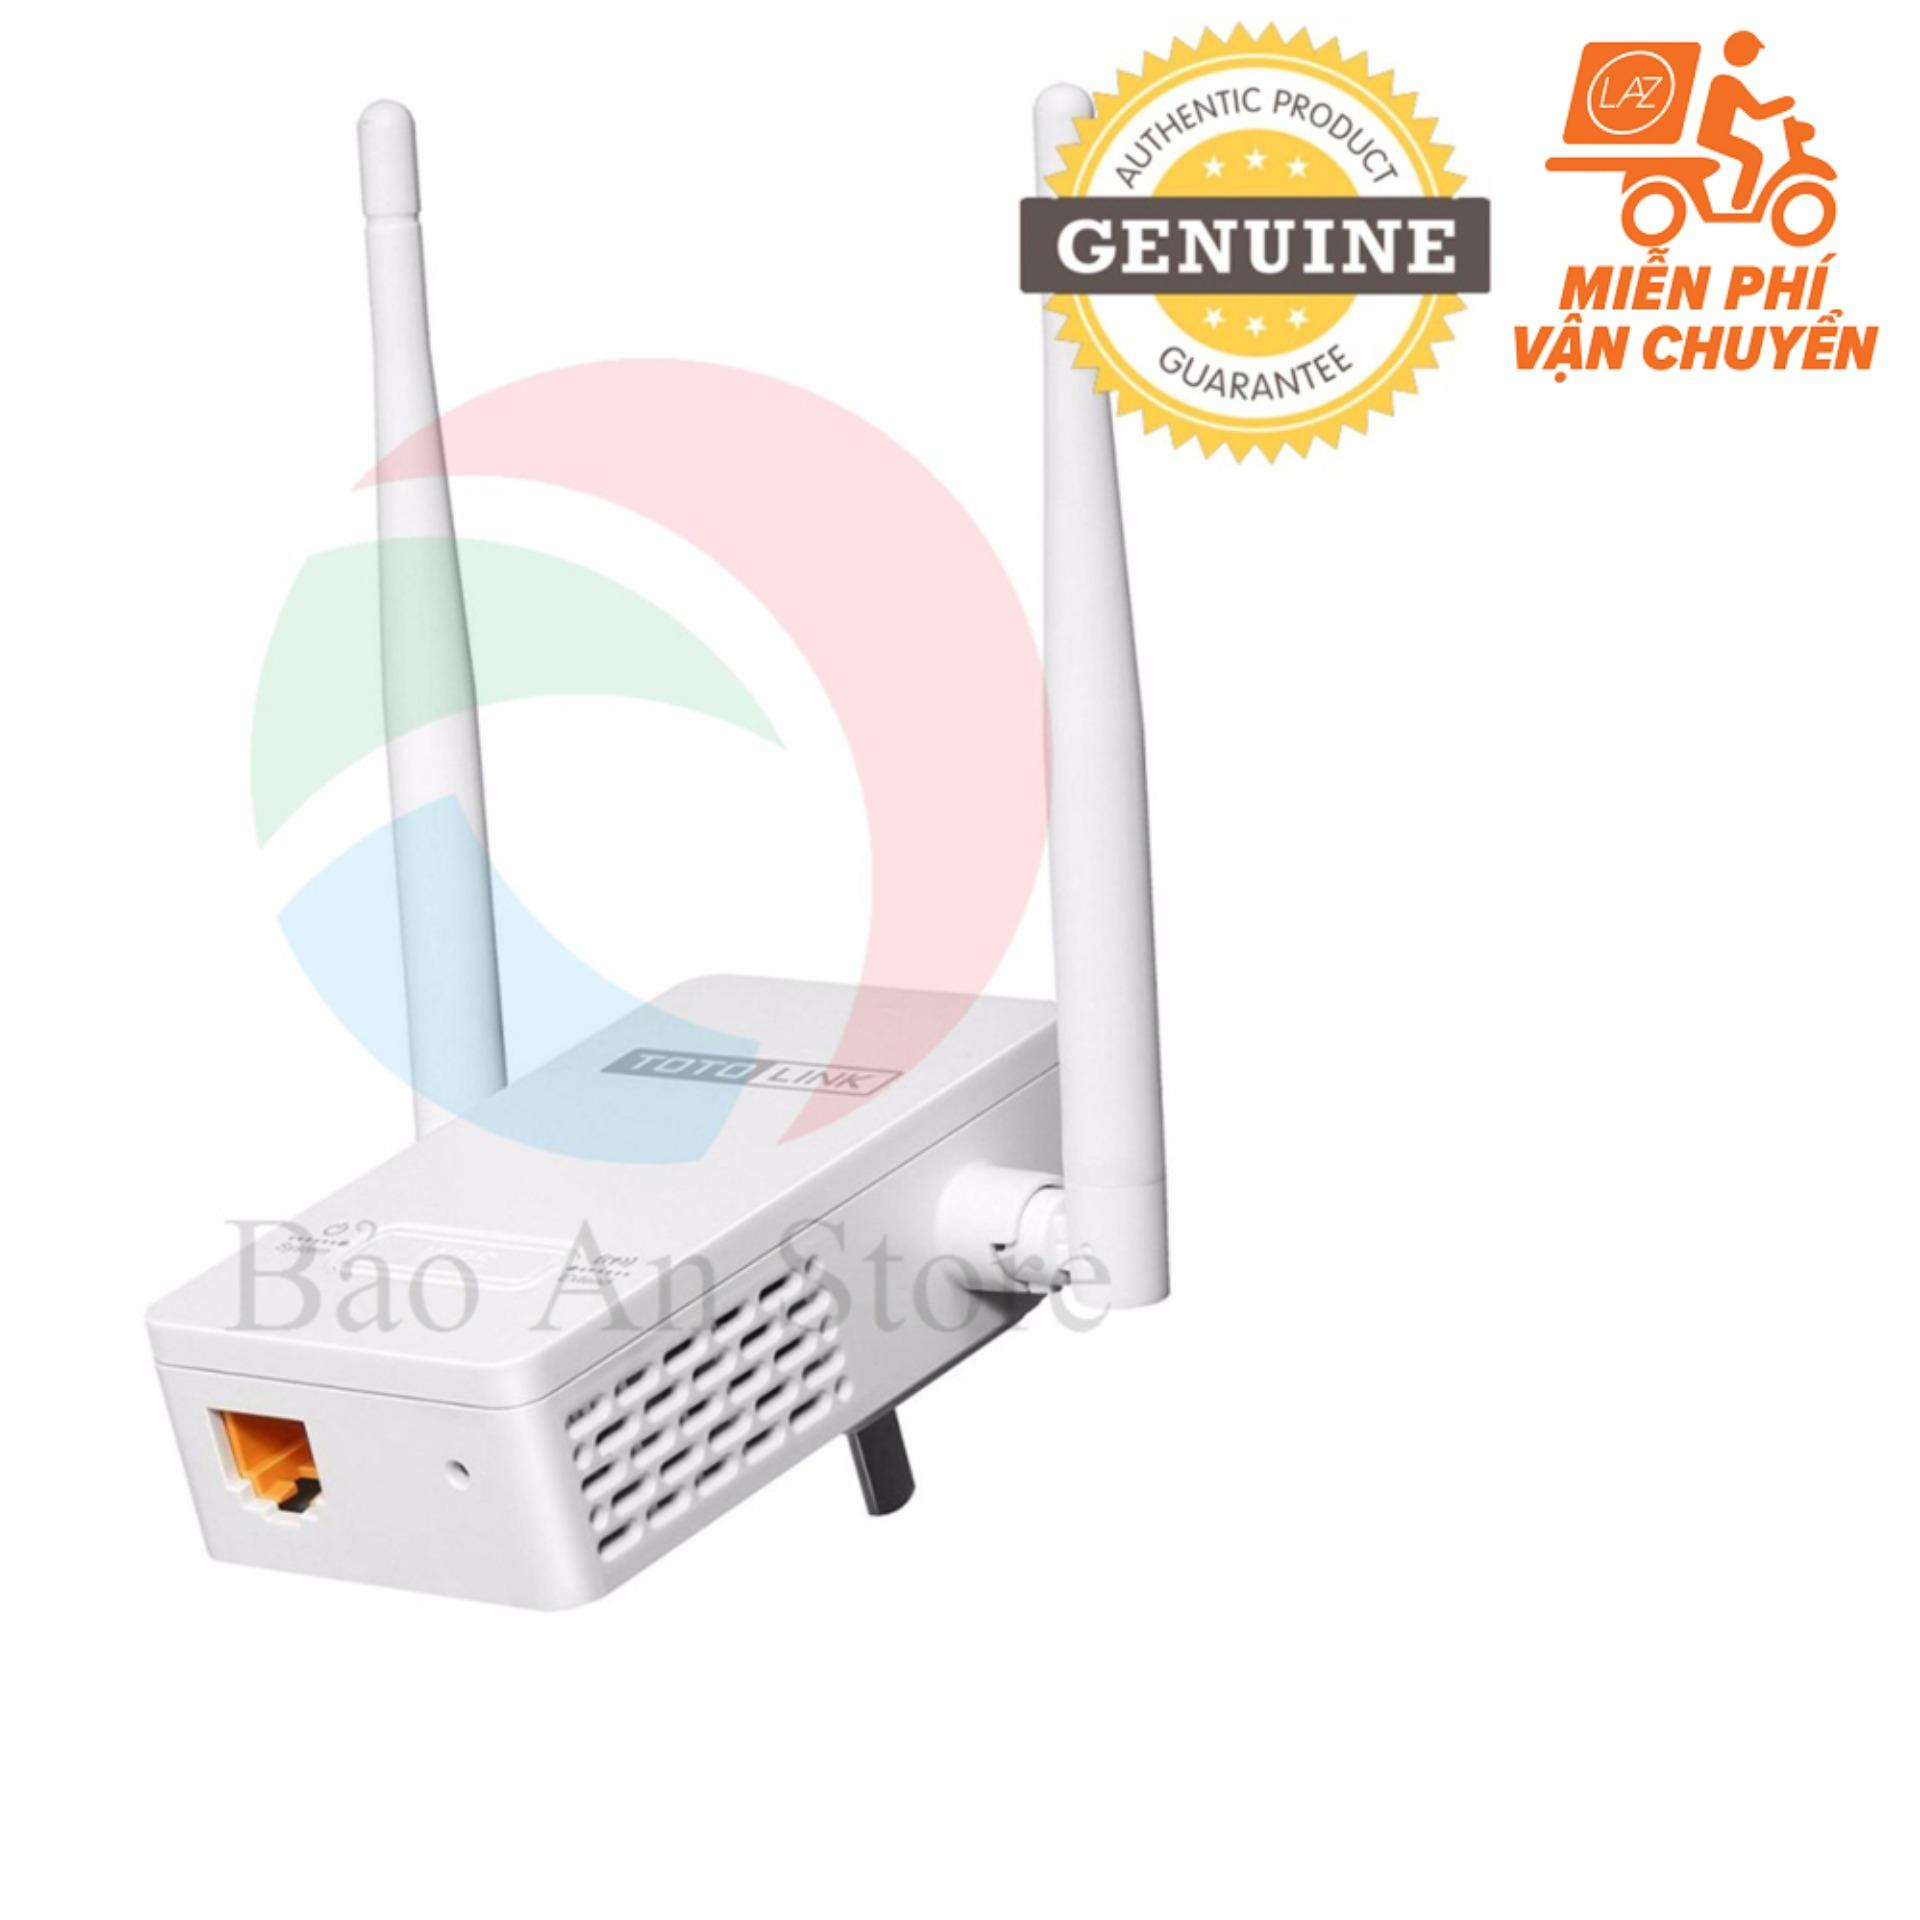 B Kch Sng Wifi Totolink Chnh Hng Gi Tt Pl200kit 200mbps Powerline Adapter Thit Repeater Ex200 Trng